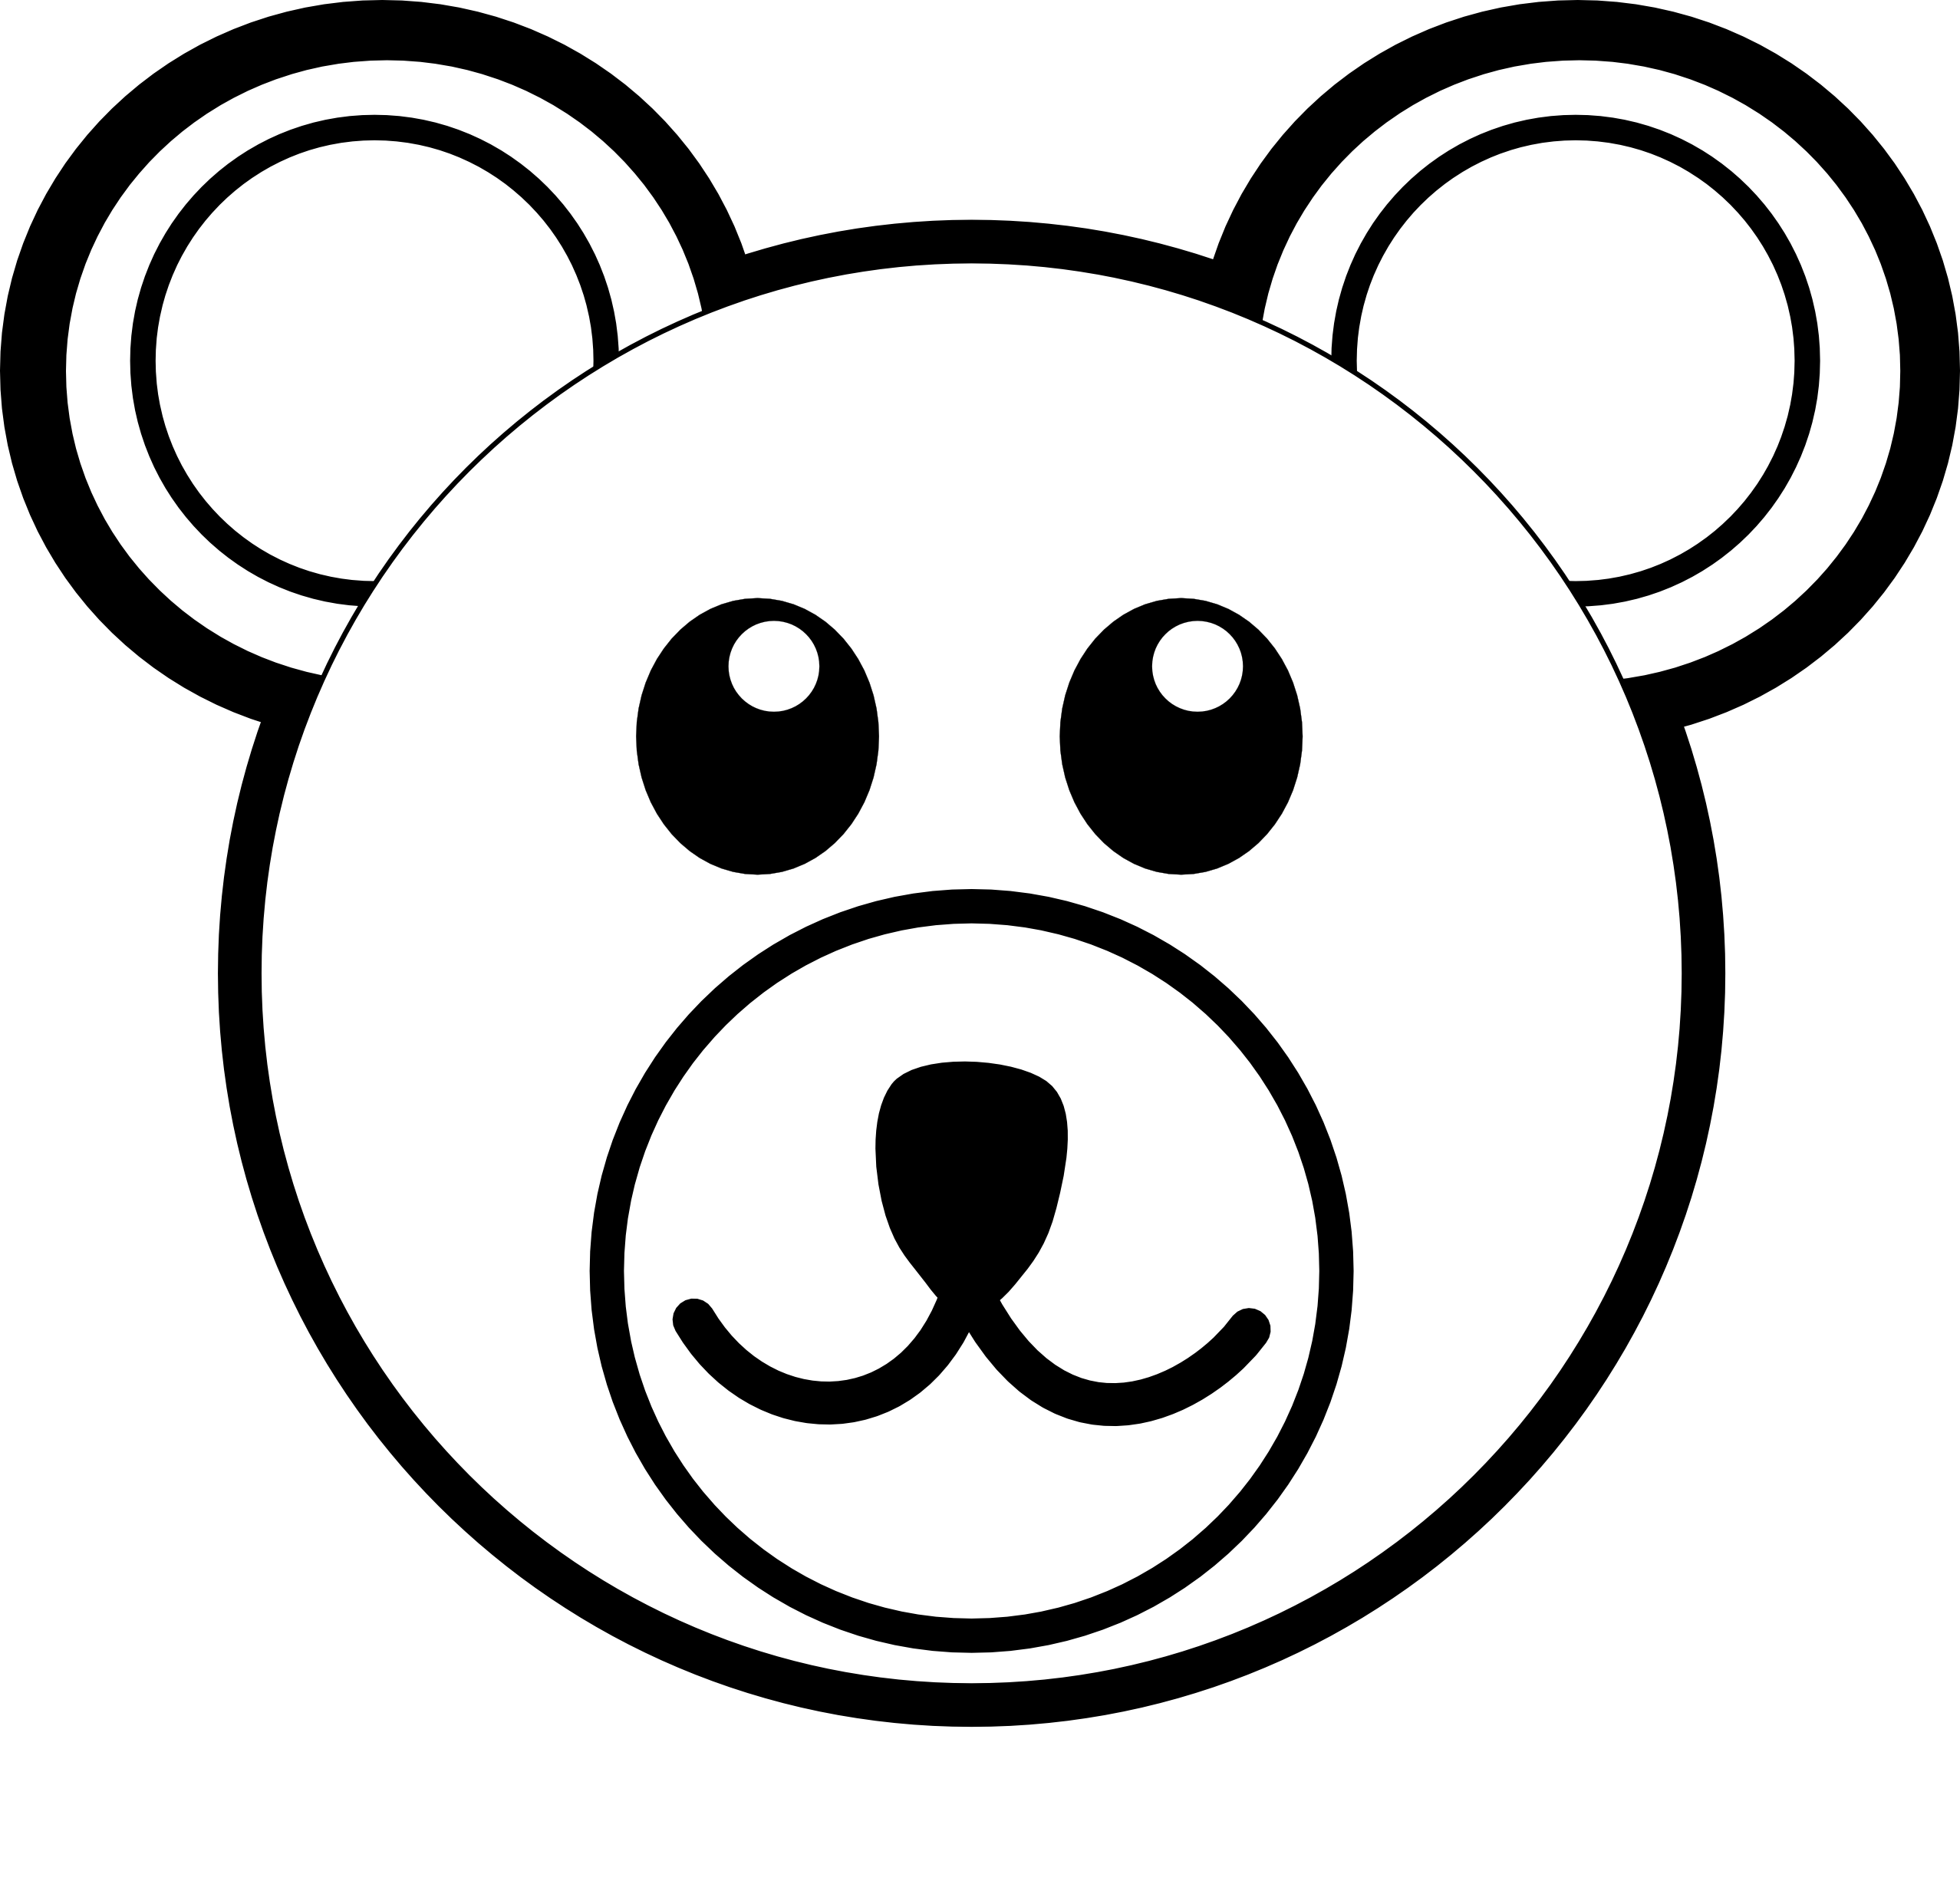 Einstein clipart sketch. Easy bear face drawing